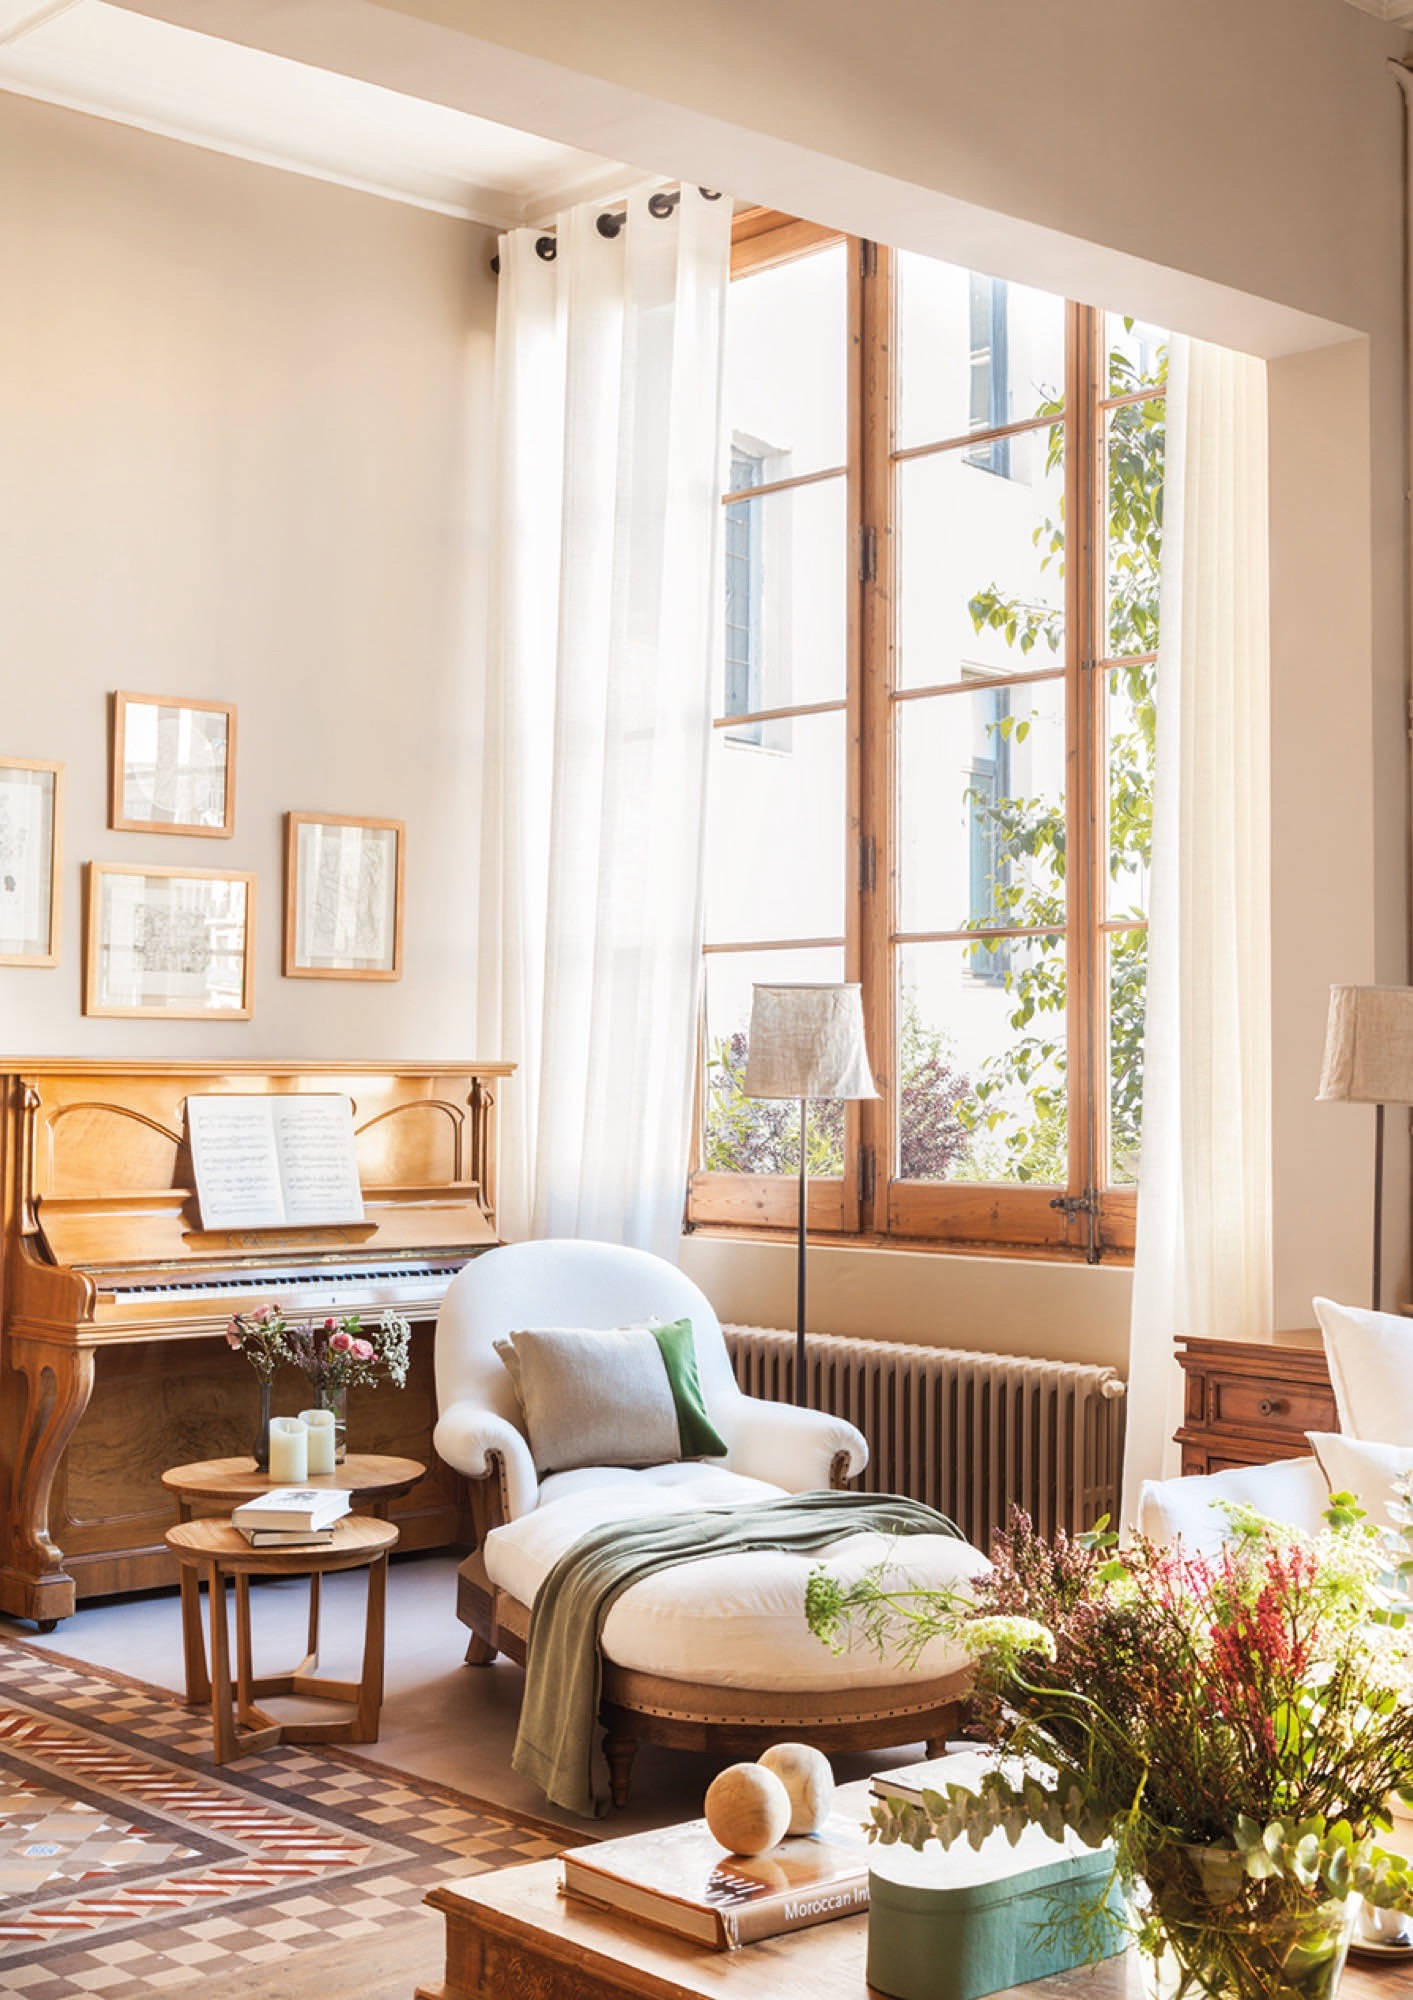 Beautiful Barcelona flat packed with wooden furniture and details - dining room with piano and chaise longue